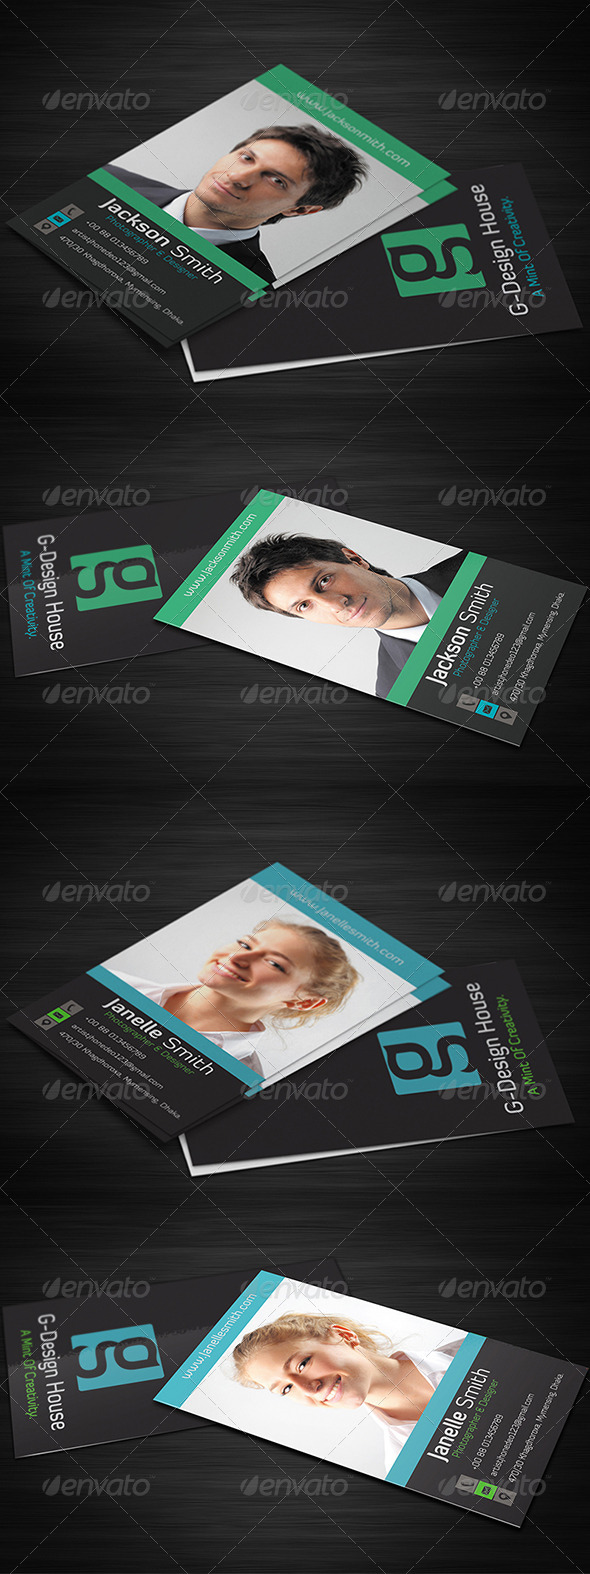 GraphicRiver Corporate Business Card Vol-2 5860263